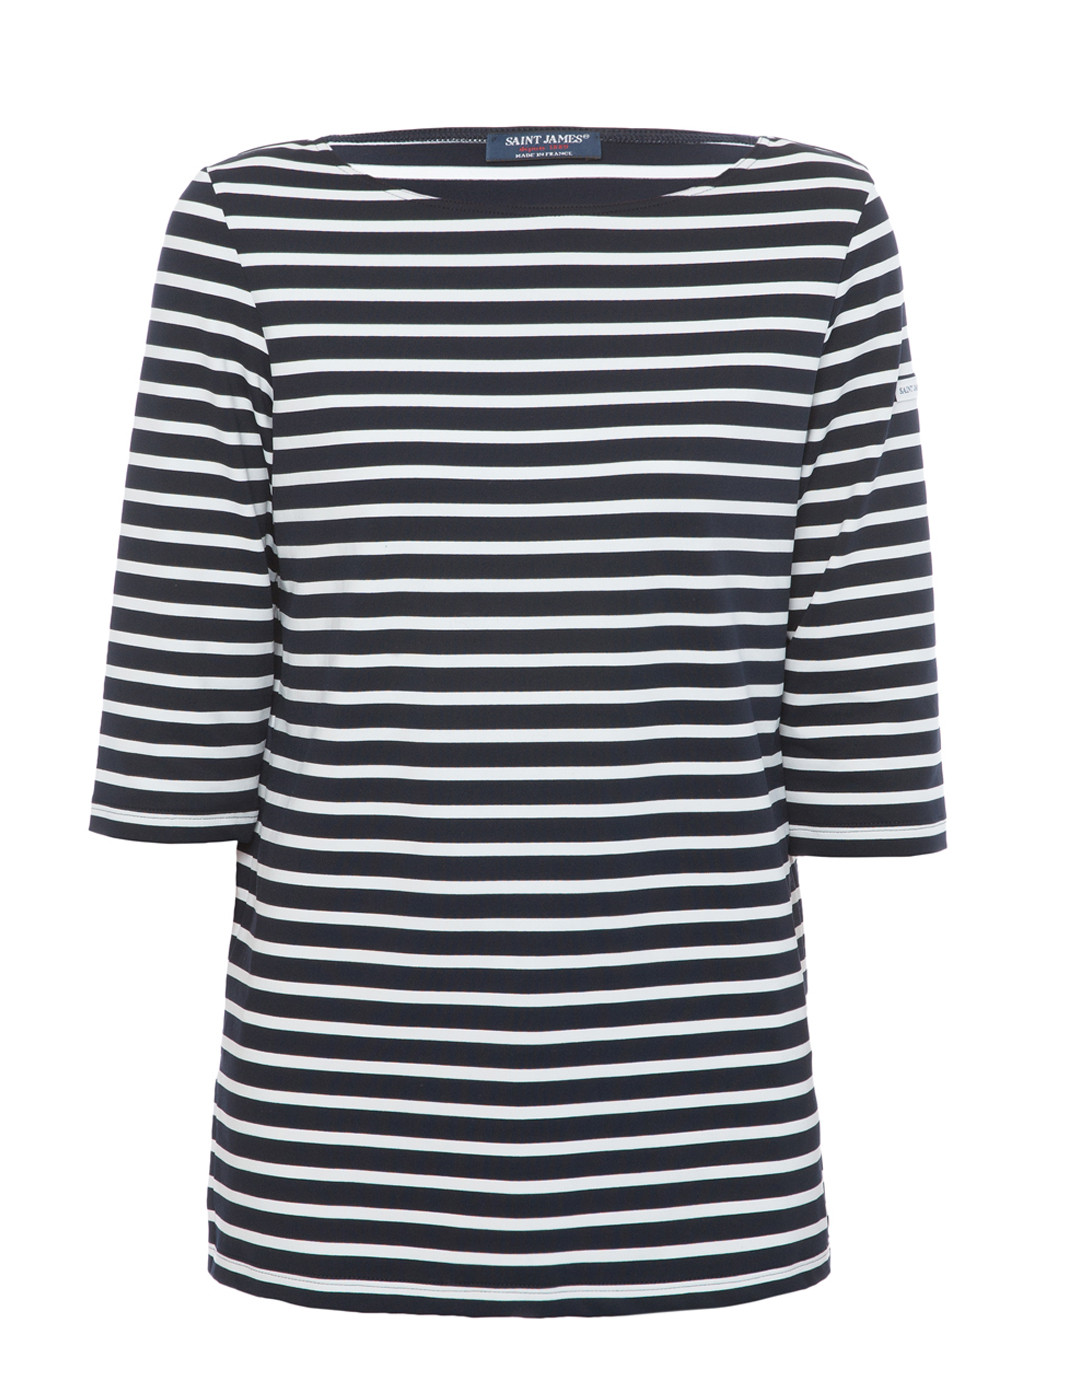 Phare navy and white striped shirt saint james halsbrook for St james striped shirt